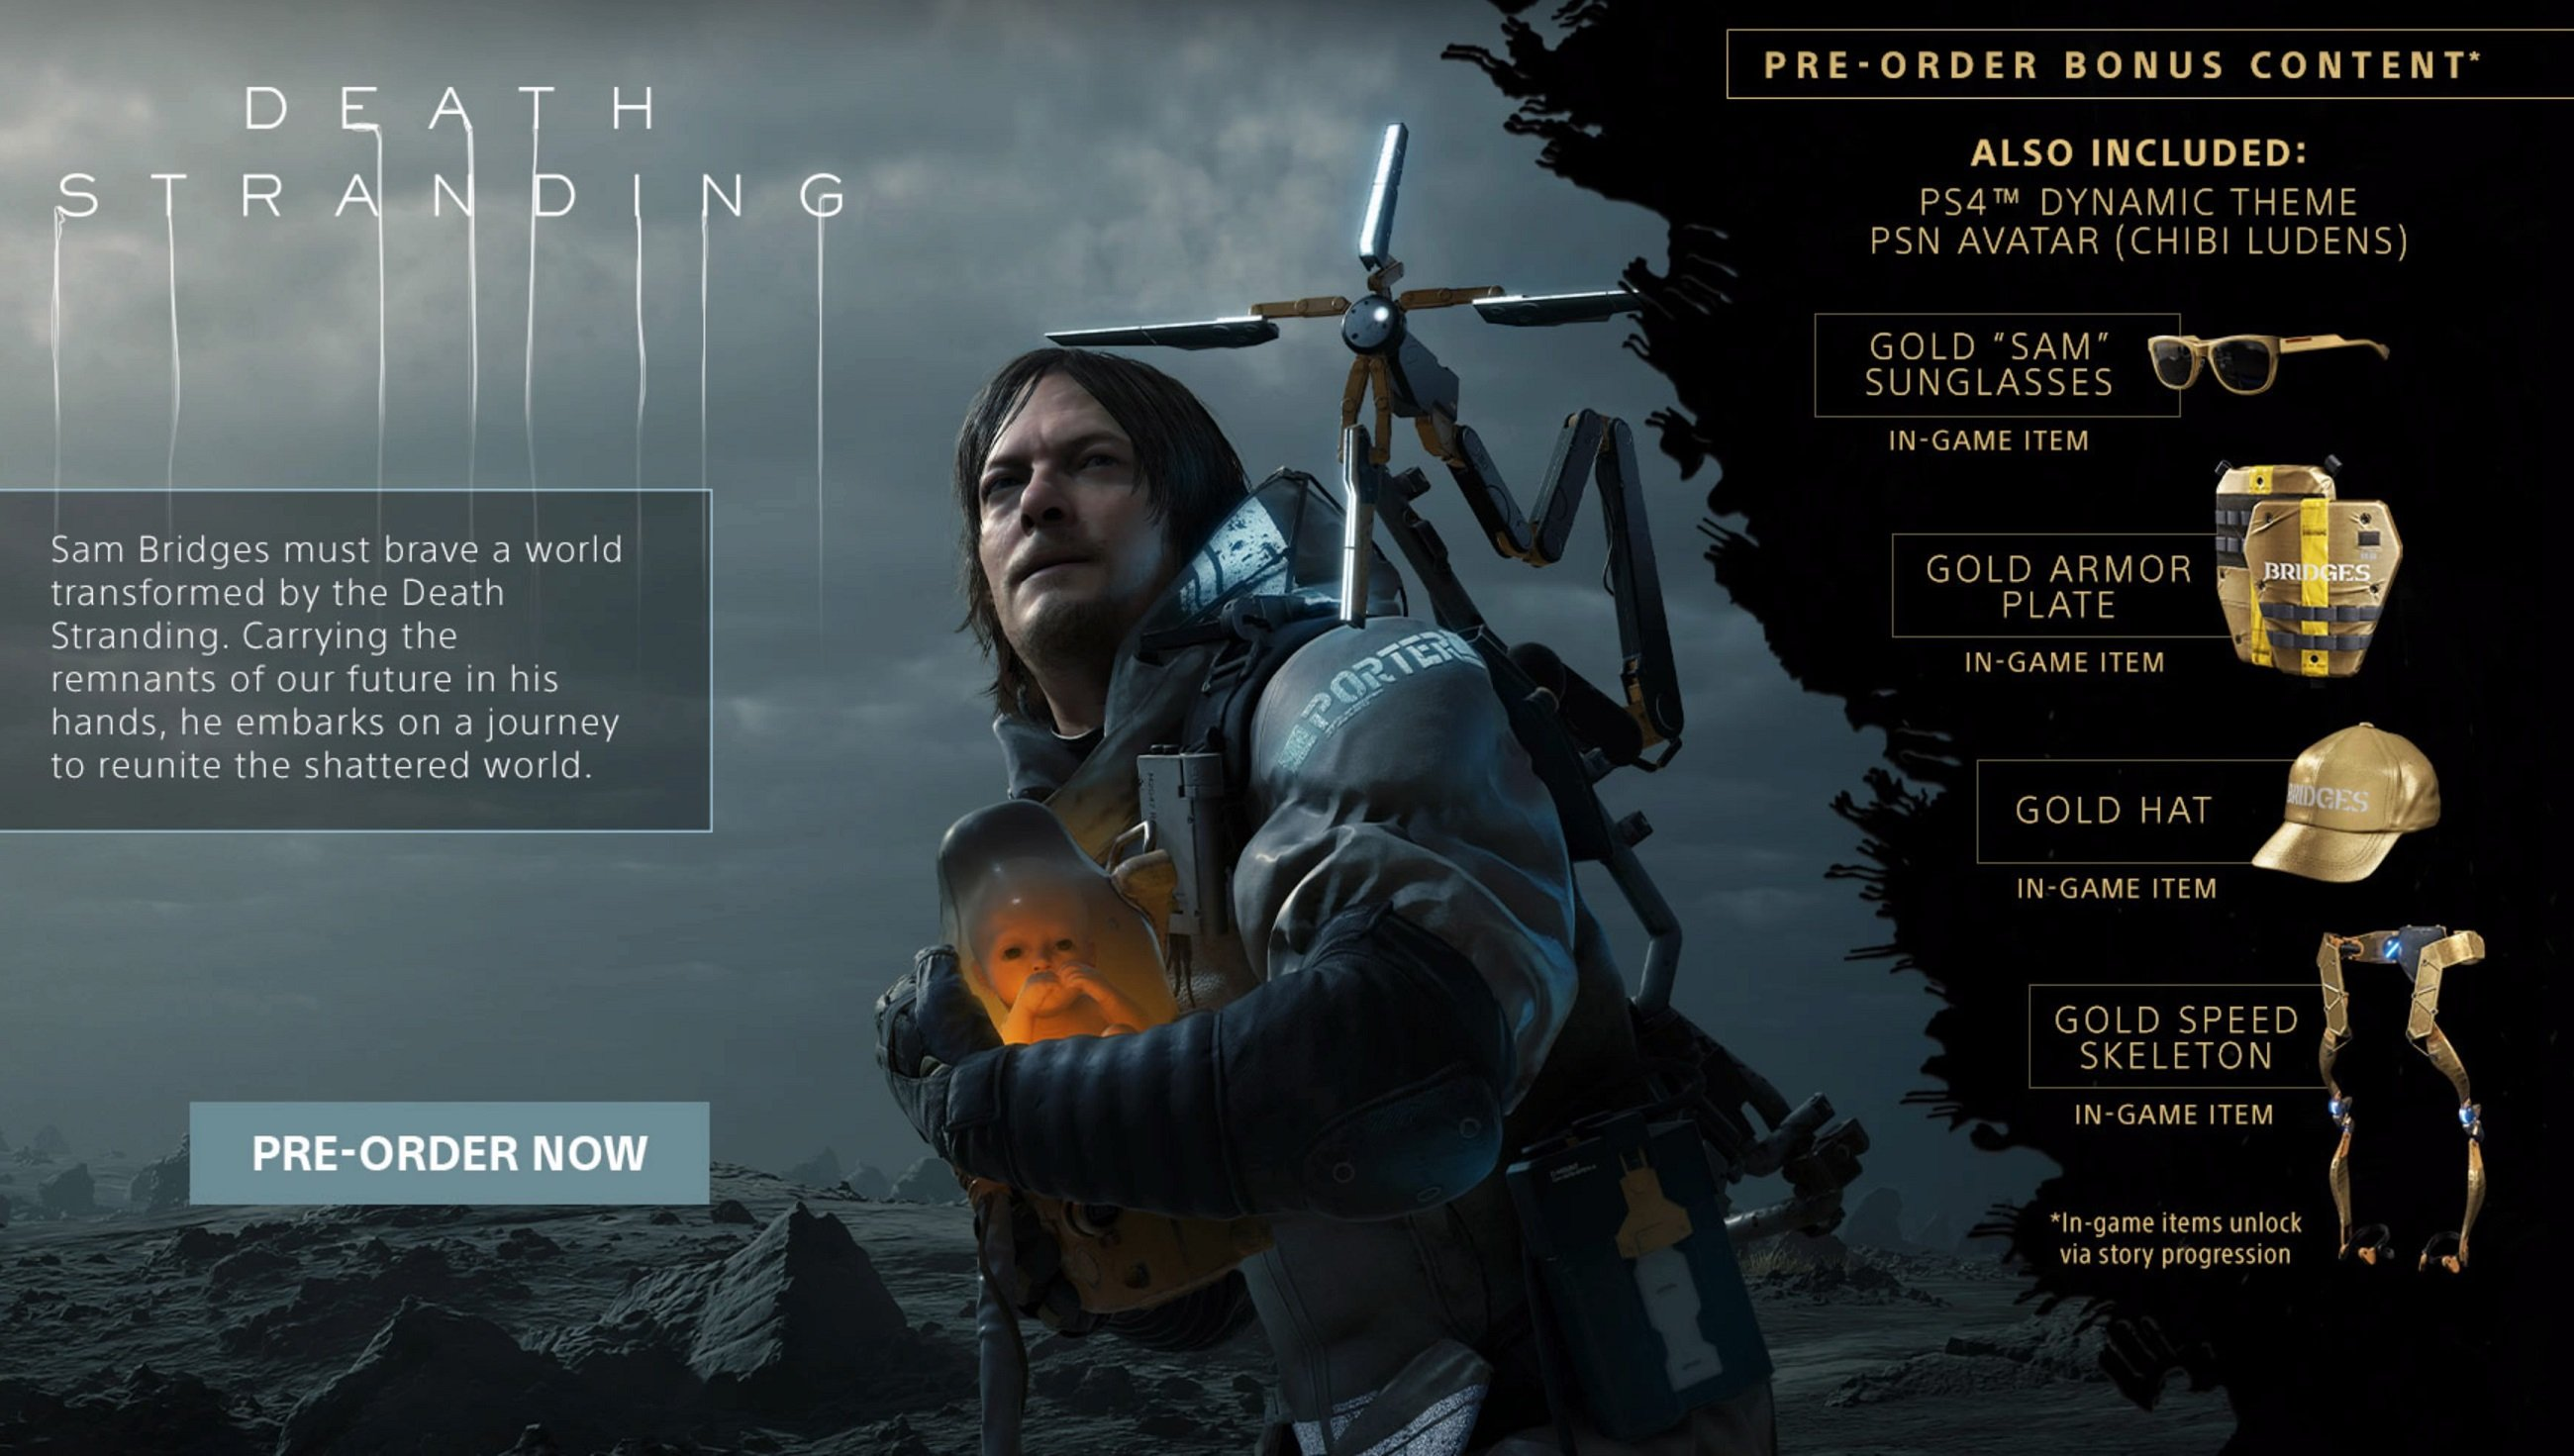 How to redeem preorder DLC in Death Stranding